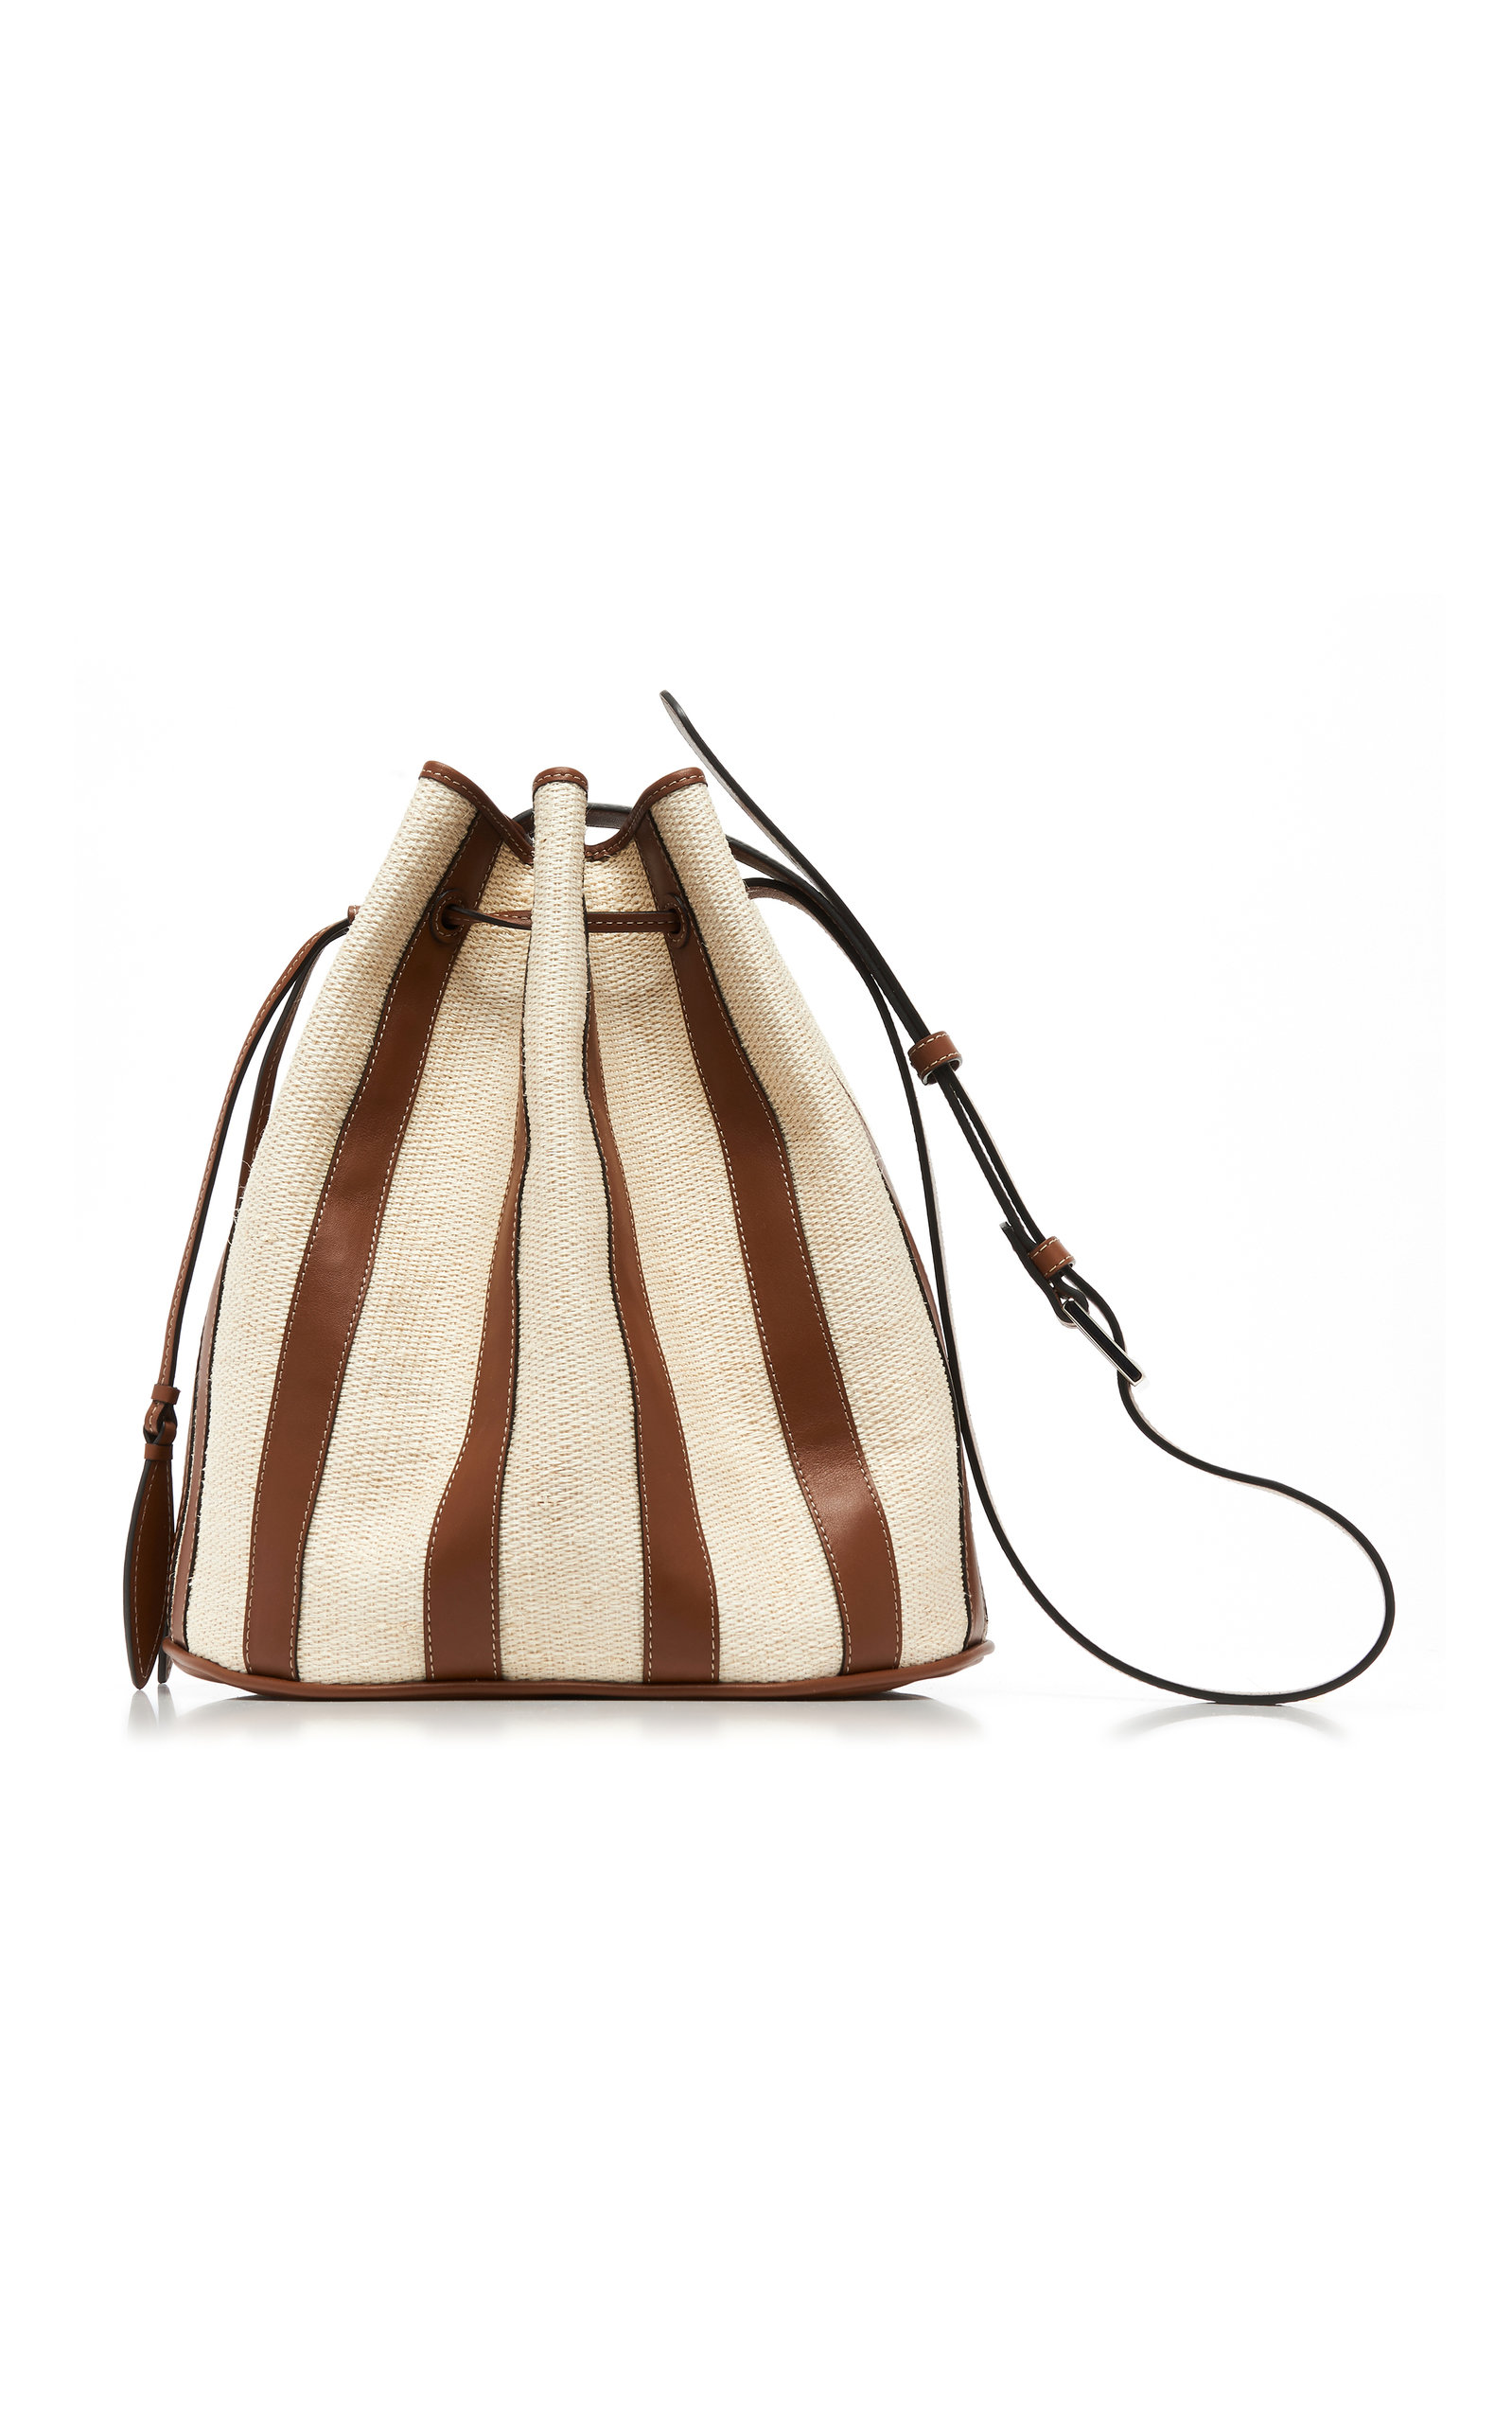 Canvas Bag By Hunting Season